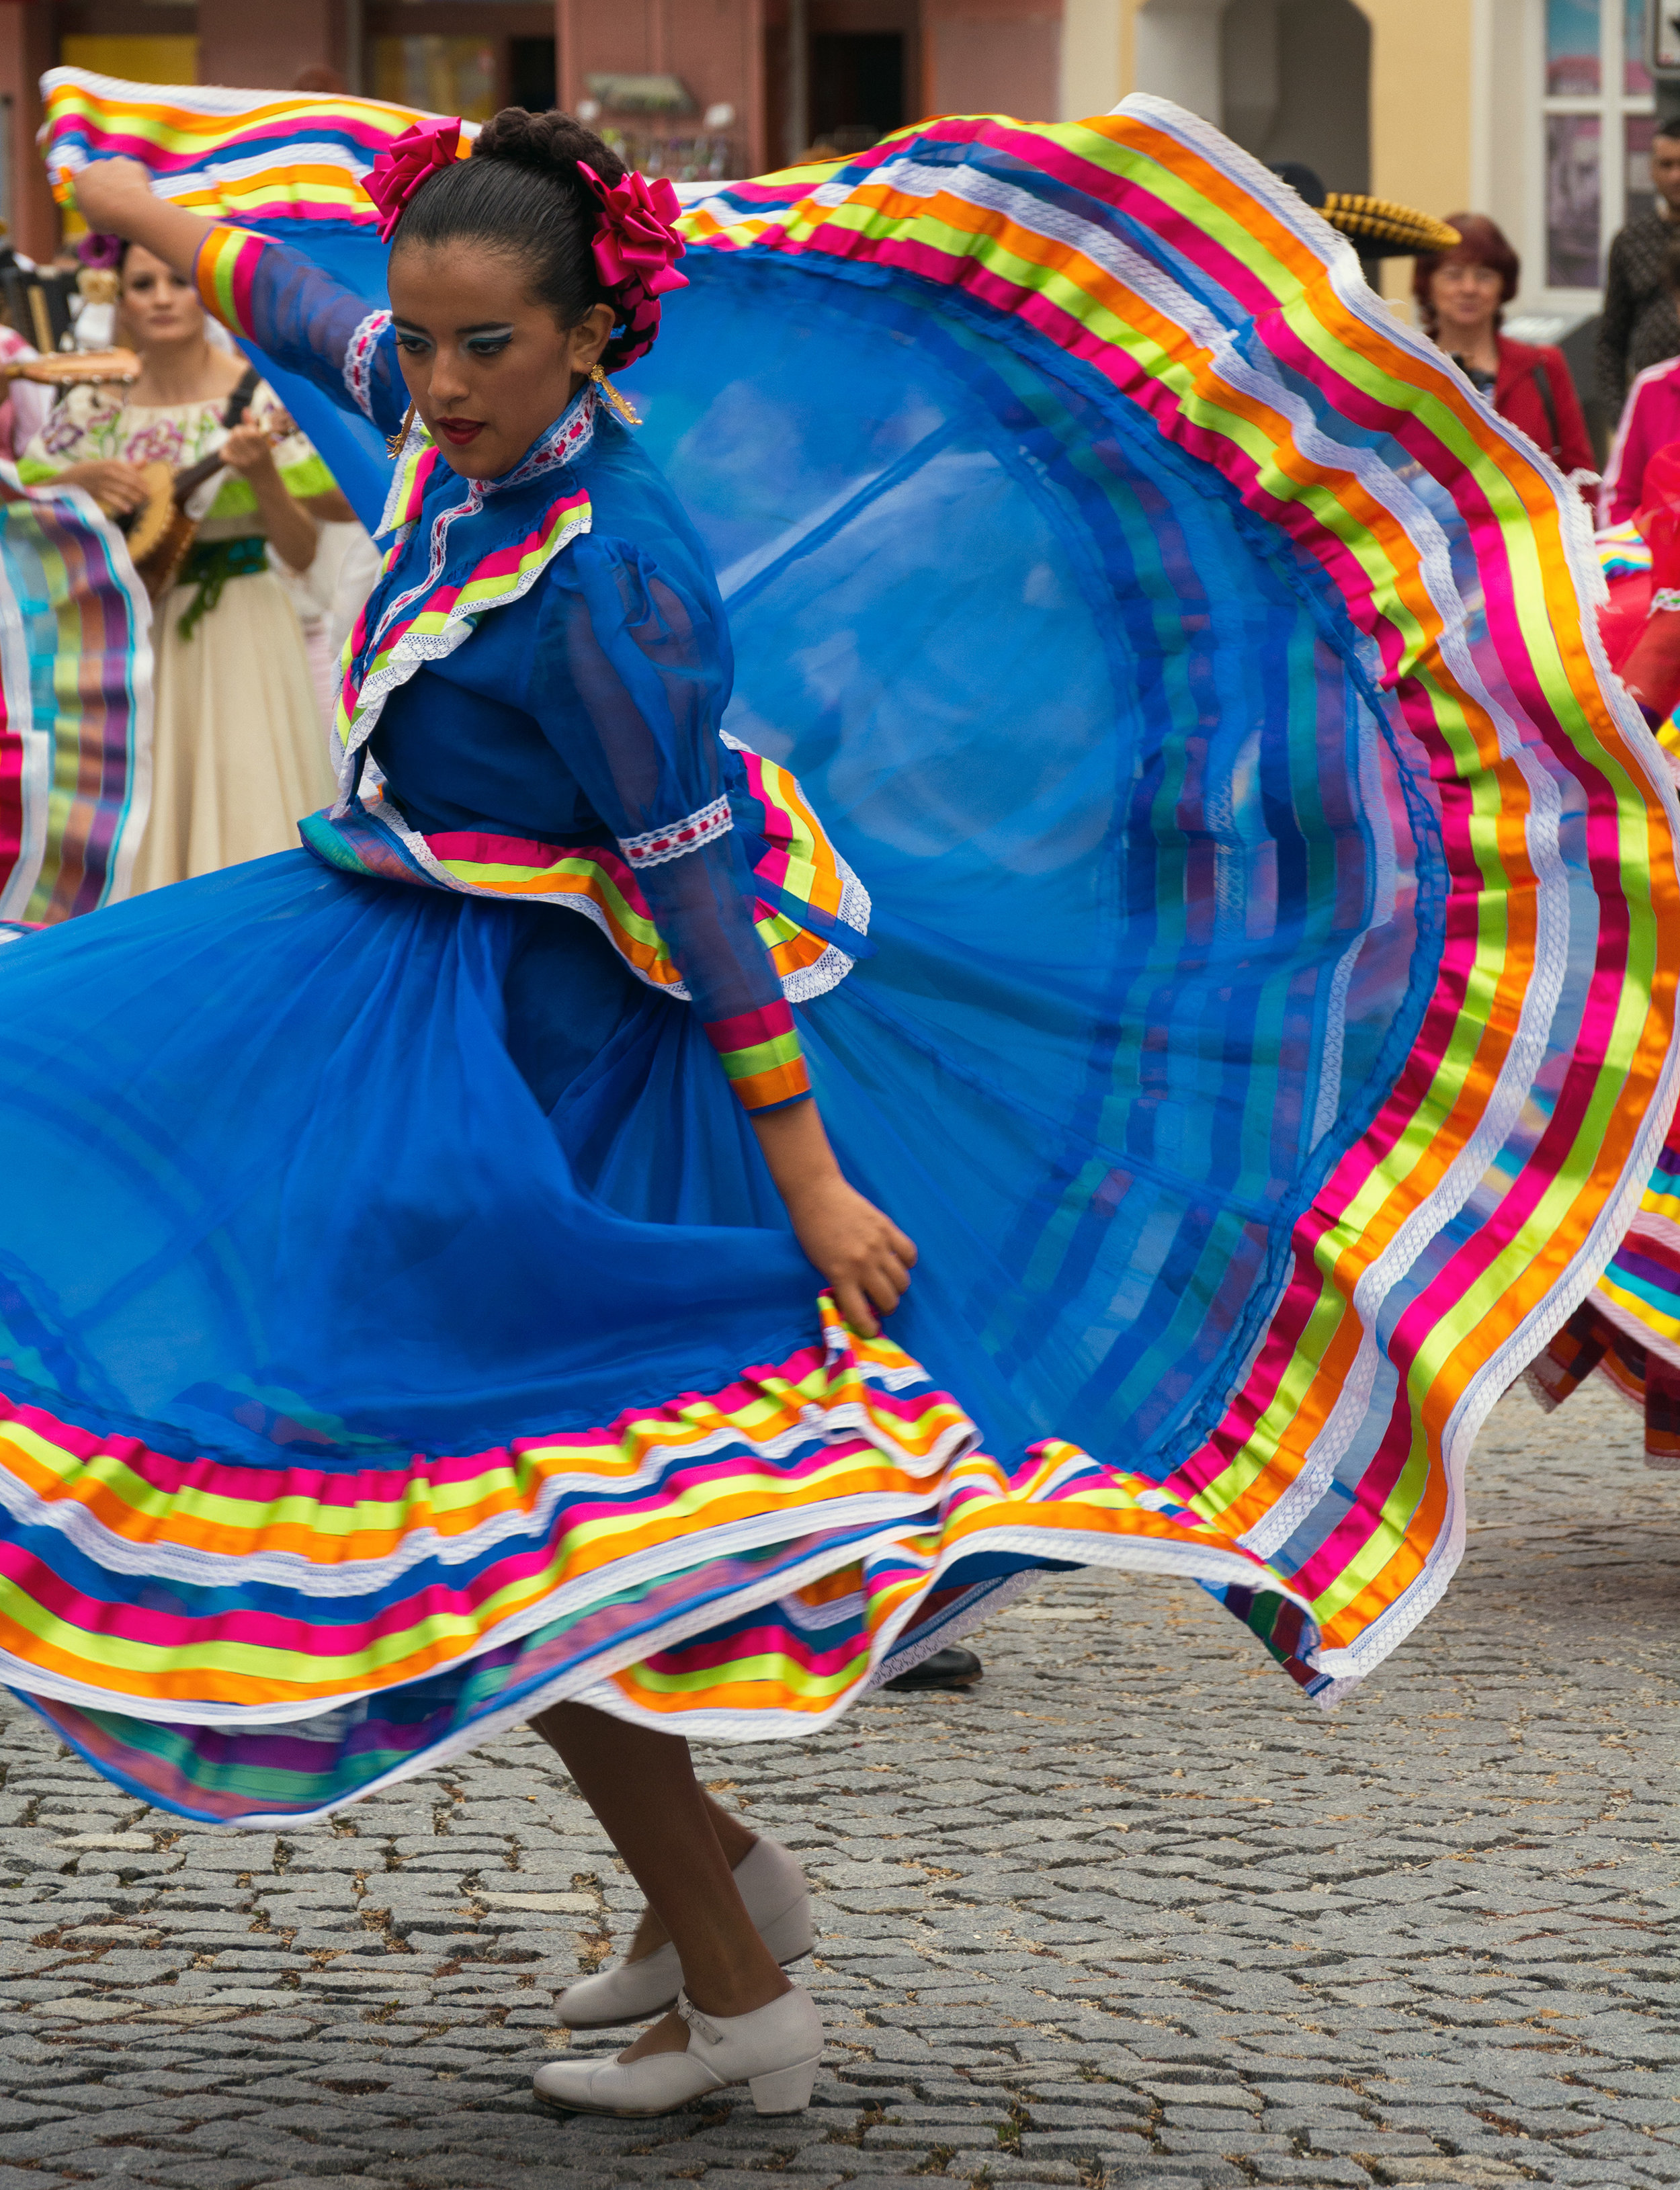 Dancing woman in traditional mexican dress.jpg